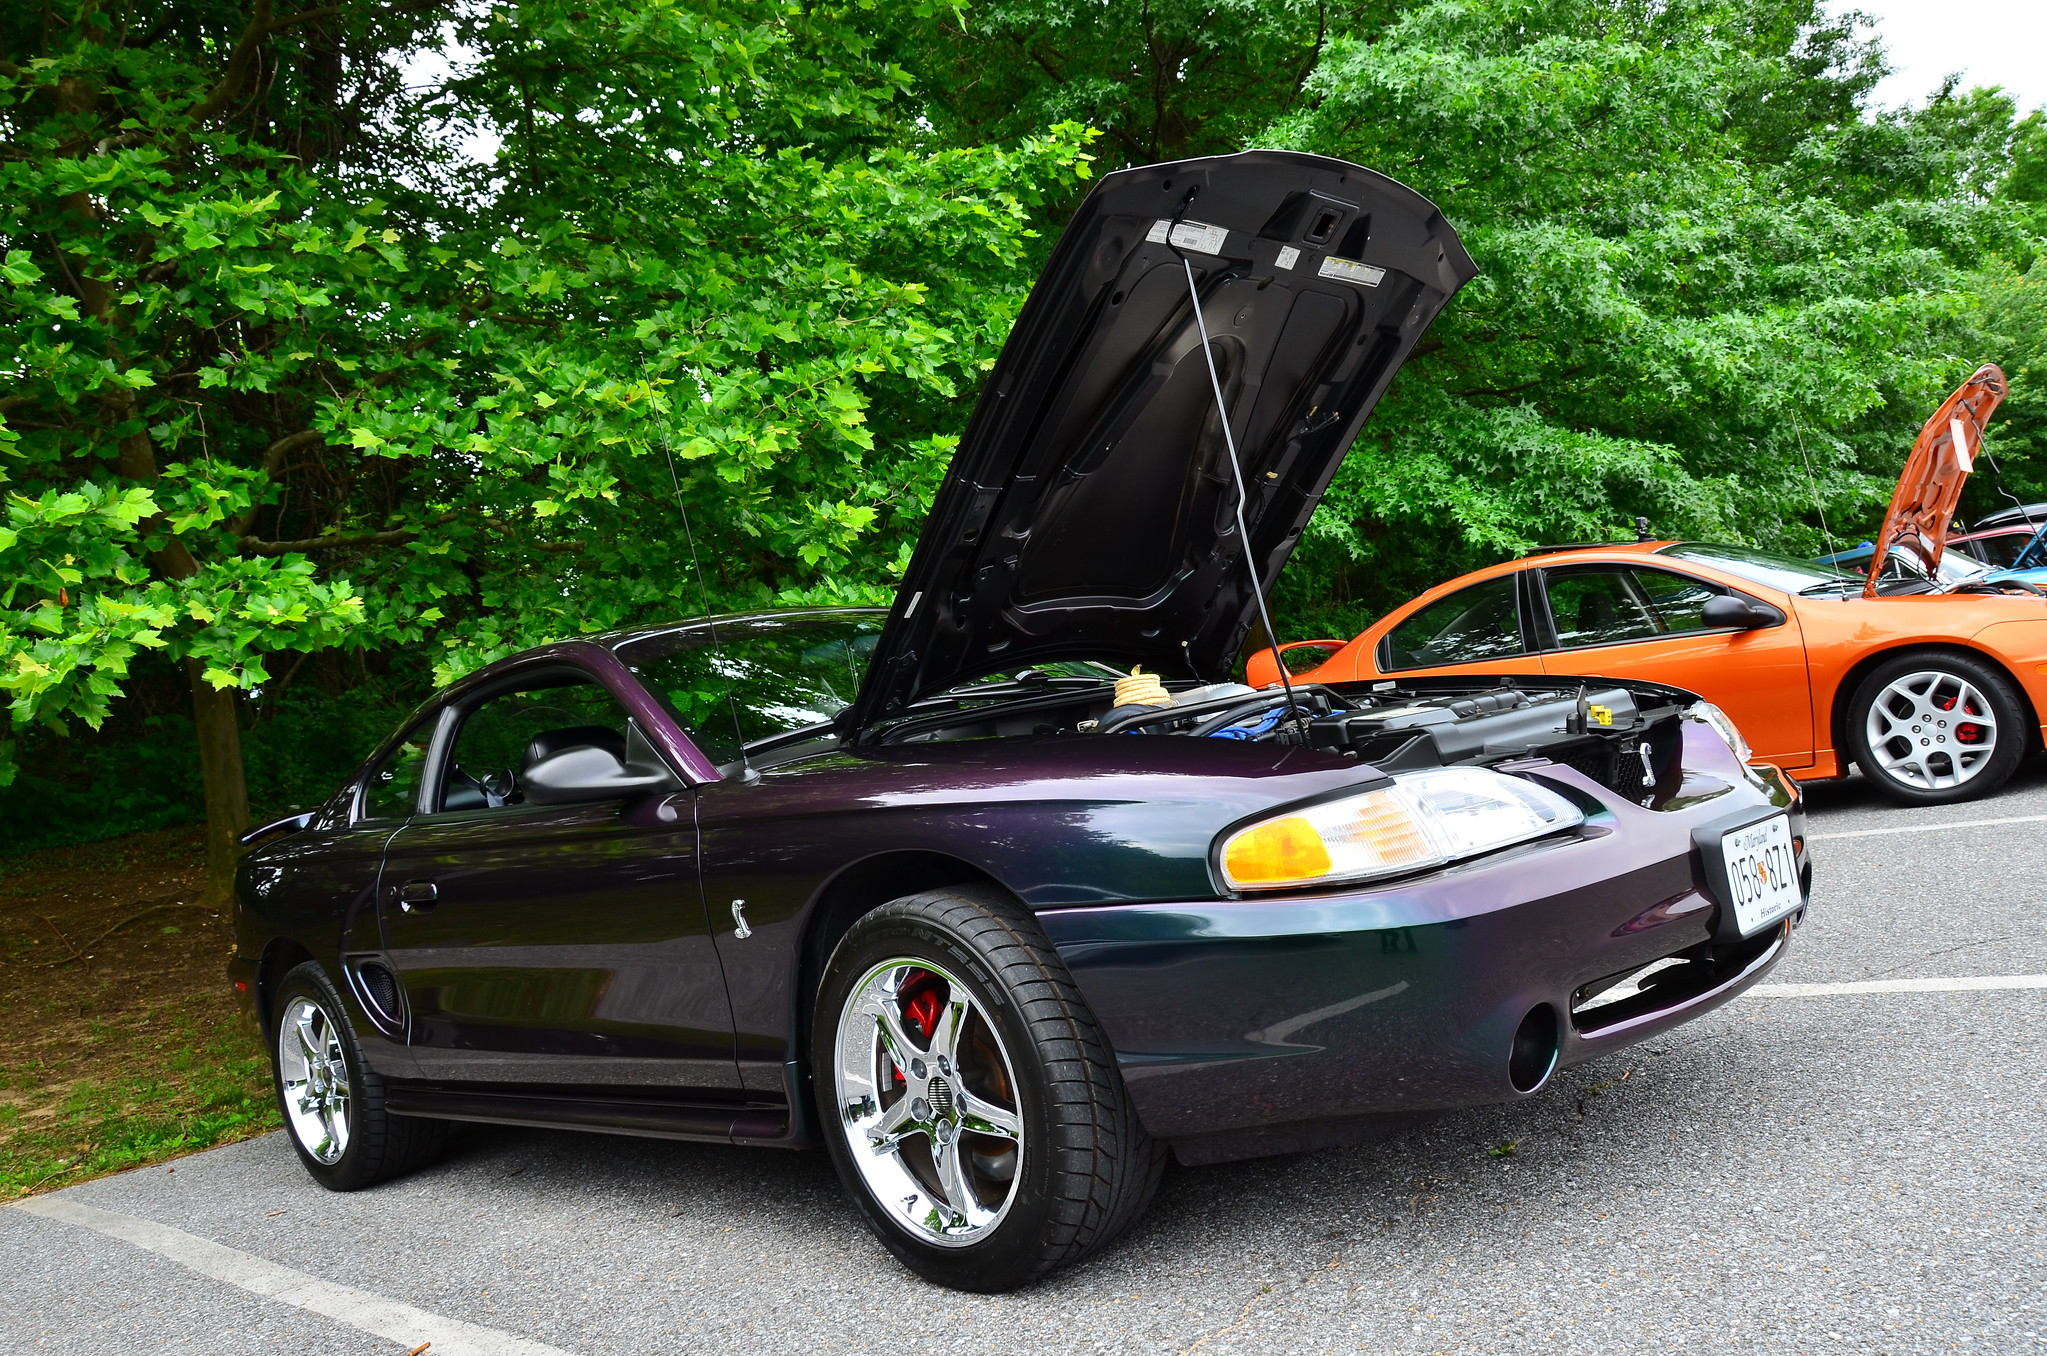 1996 Ford Mustang Cobra with mystic paint